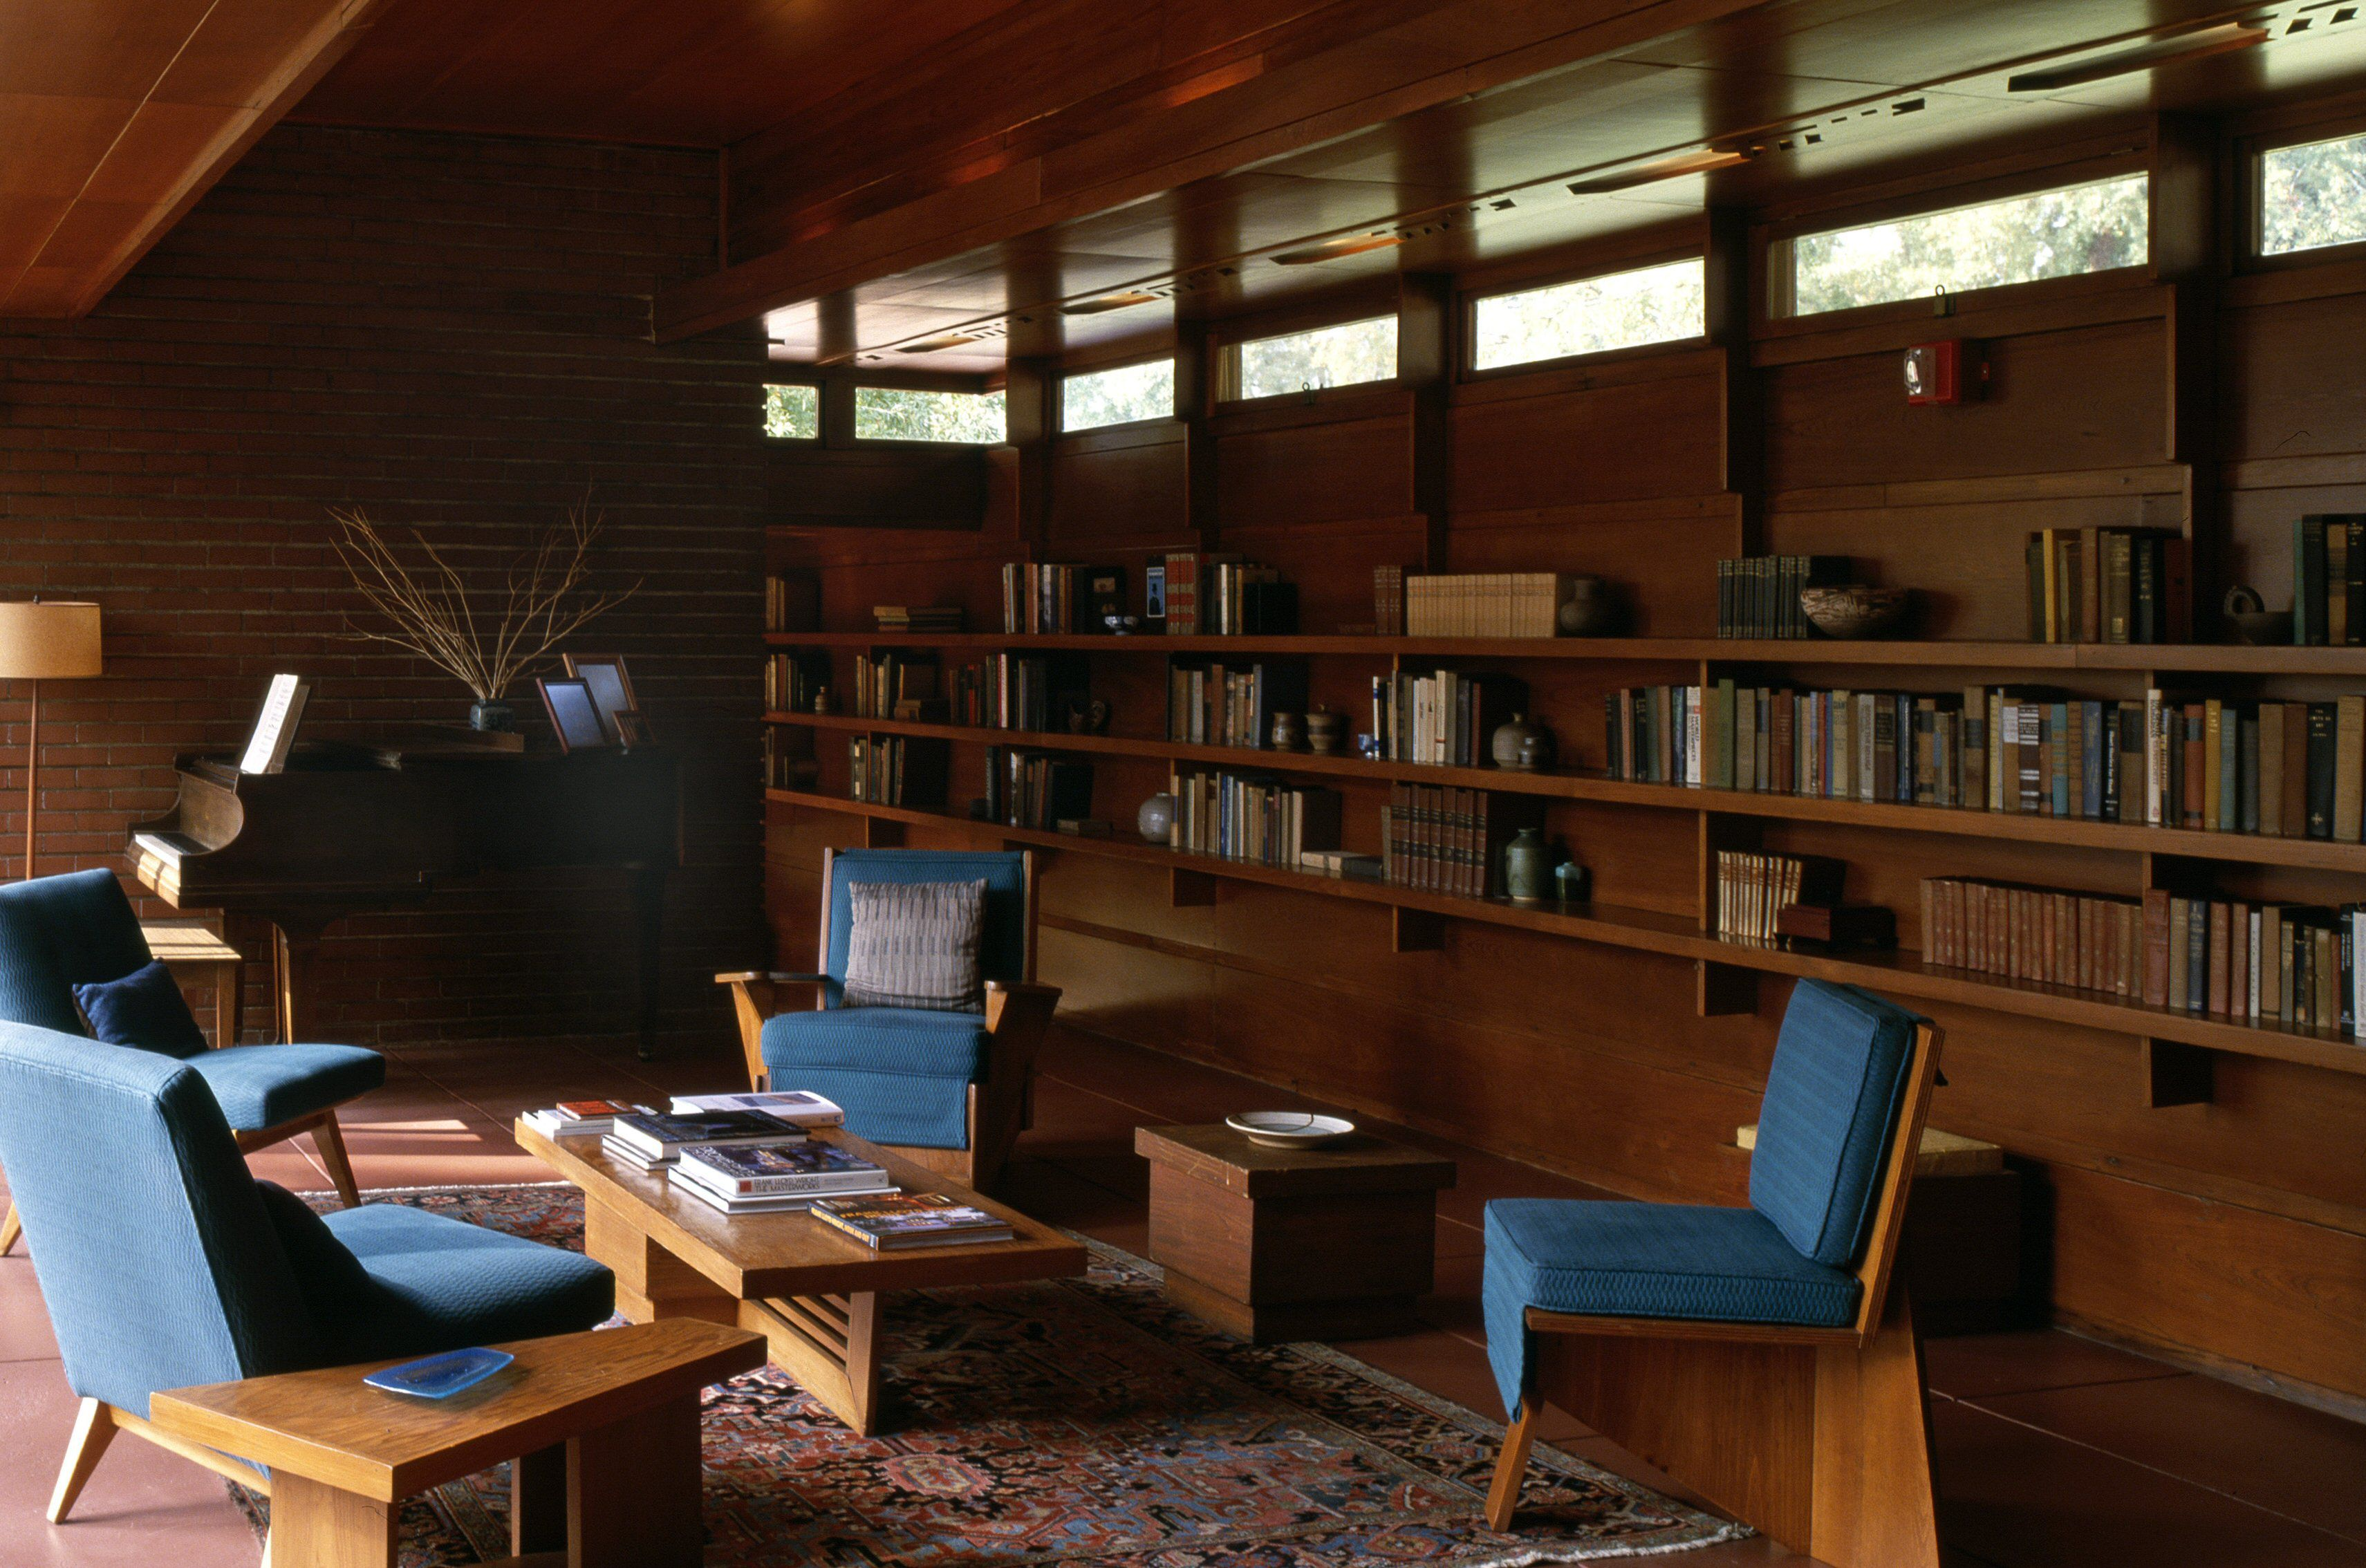 All About Clerestory Windows In Architectural Design